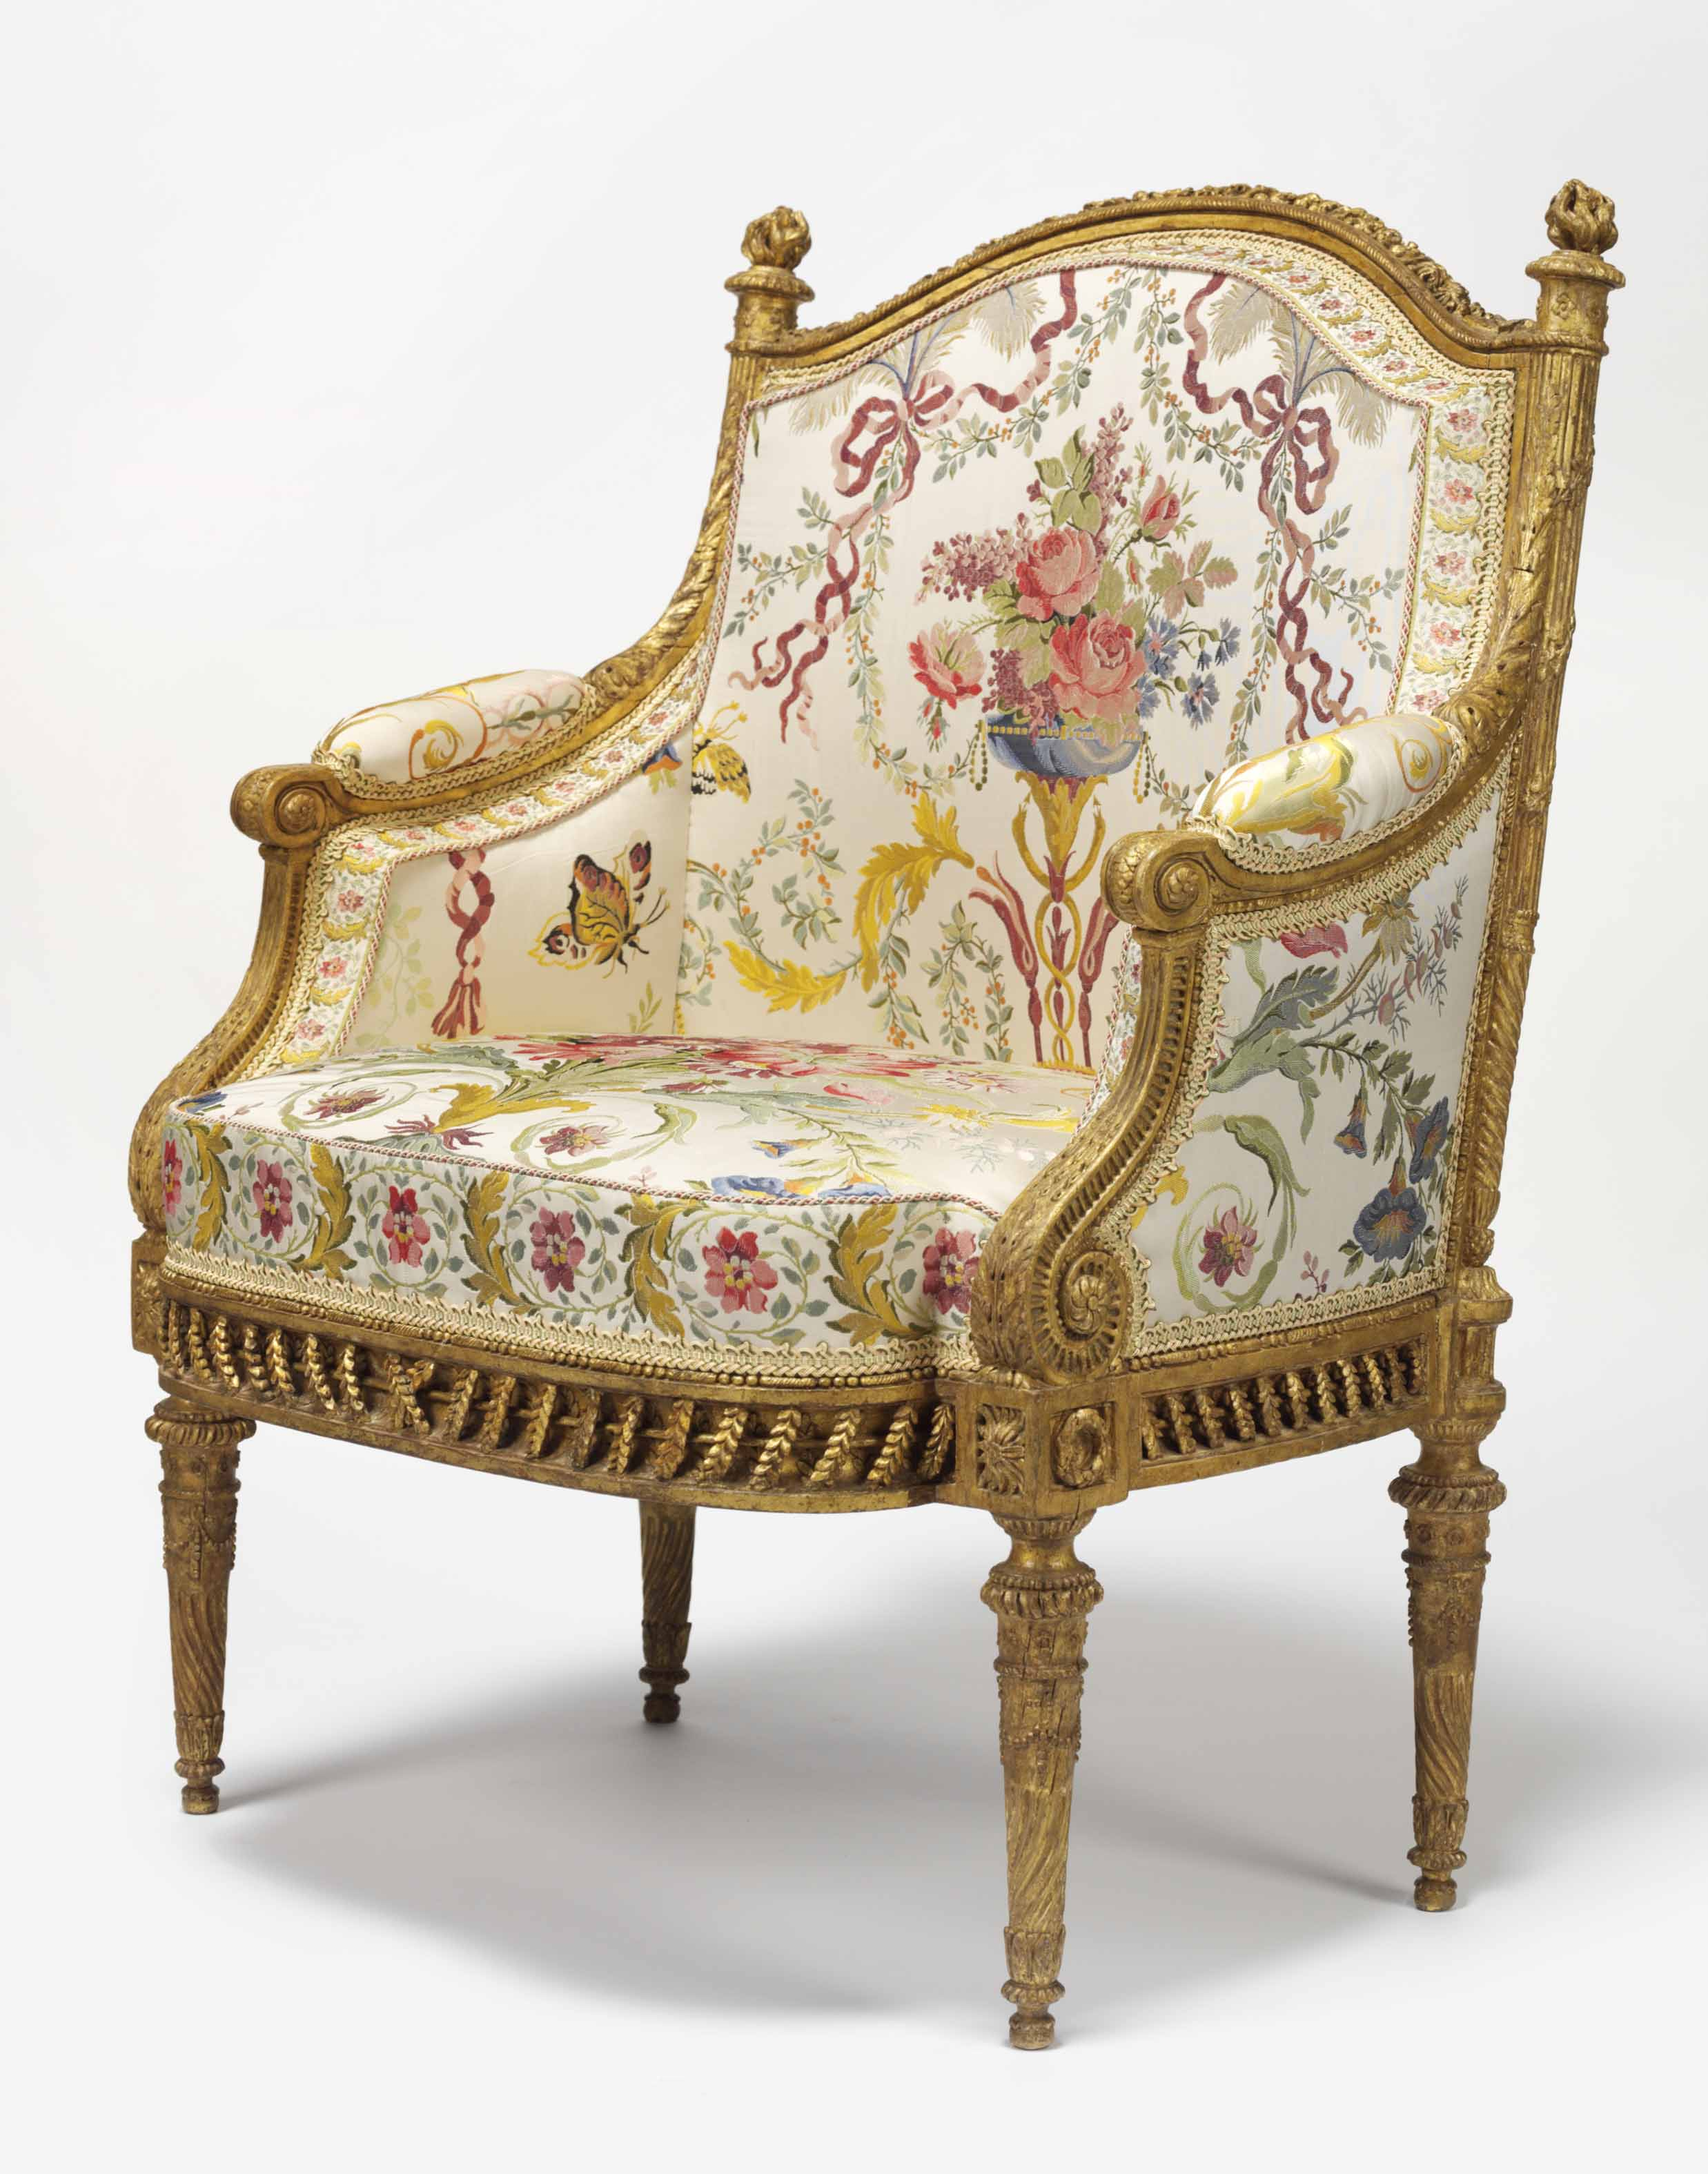 marie antoinette s exquisite armchair from the pavillon belvedere